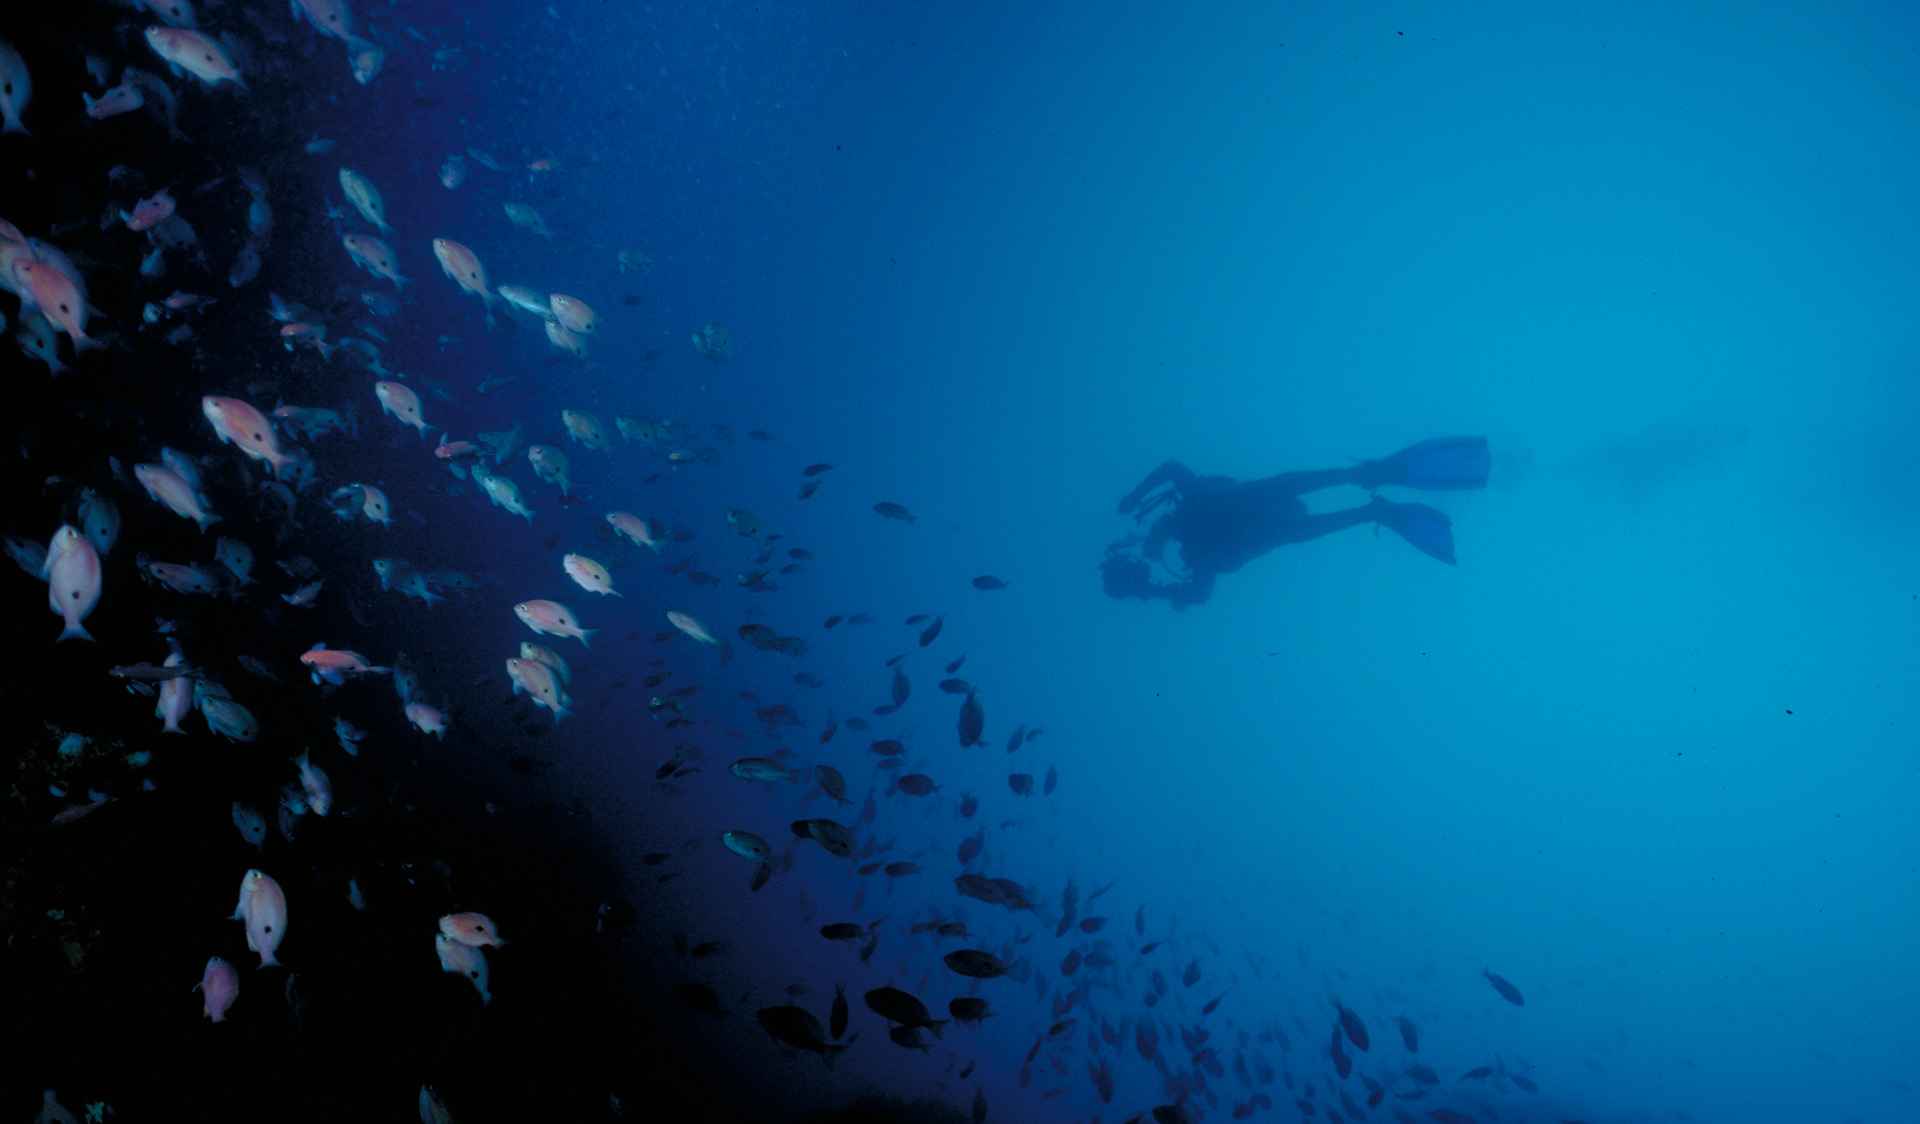 A diver takes a photo a school of fish in the Wilsons Promontory Marine National Park.